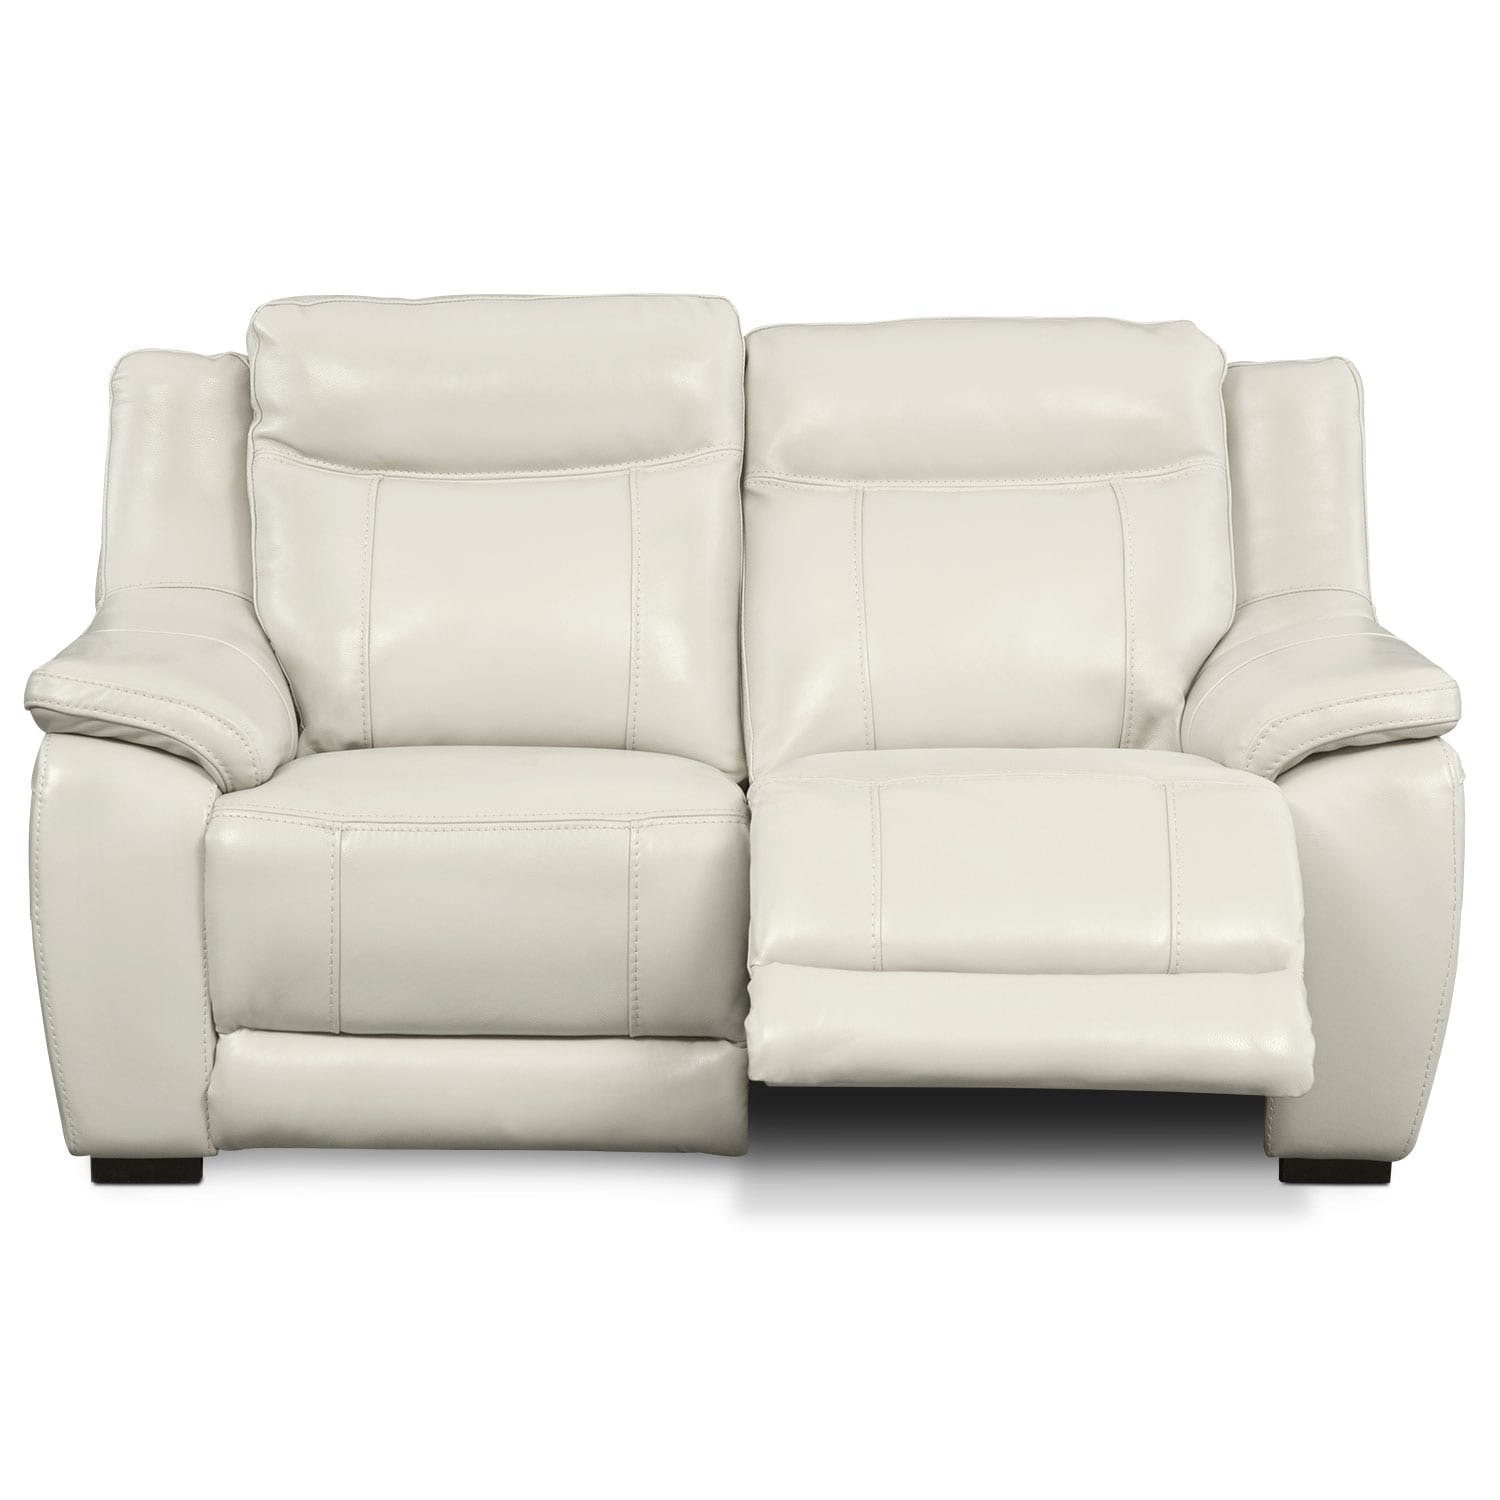 Lido Ivory Power Reclining Loveseat Value City Furniture